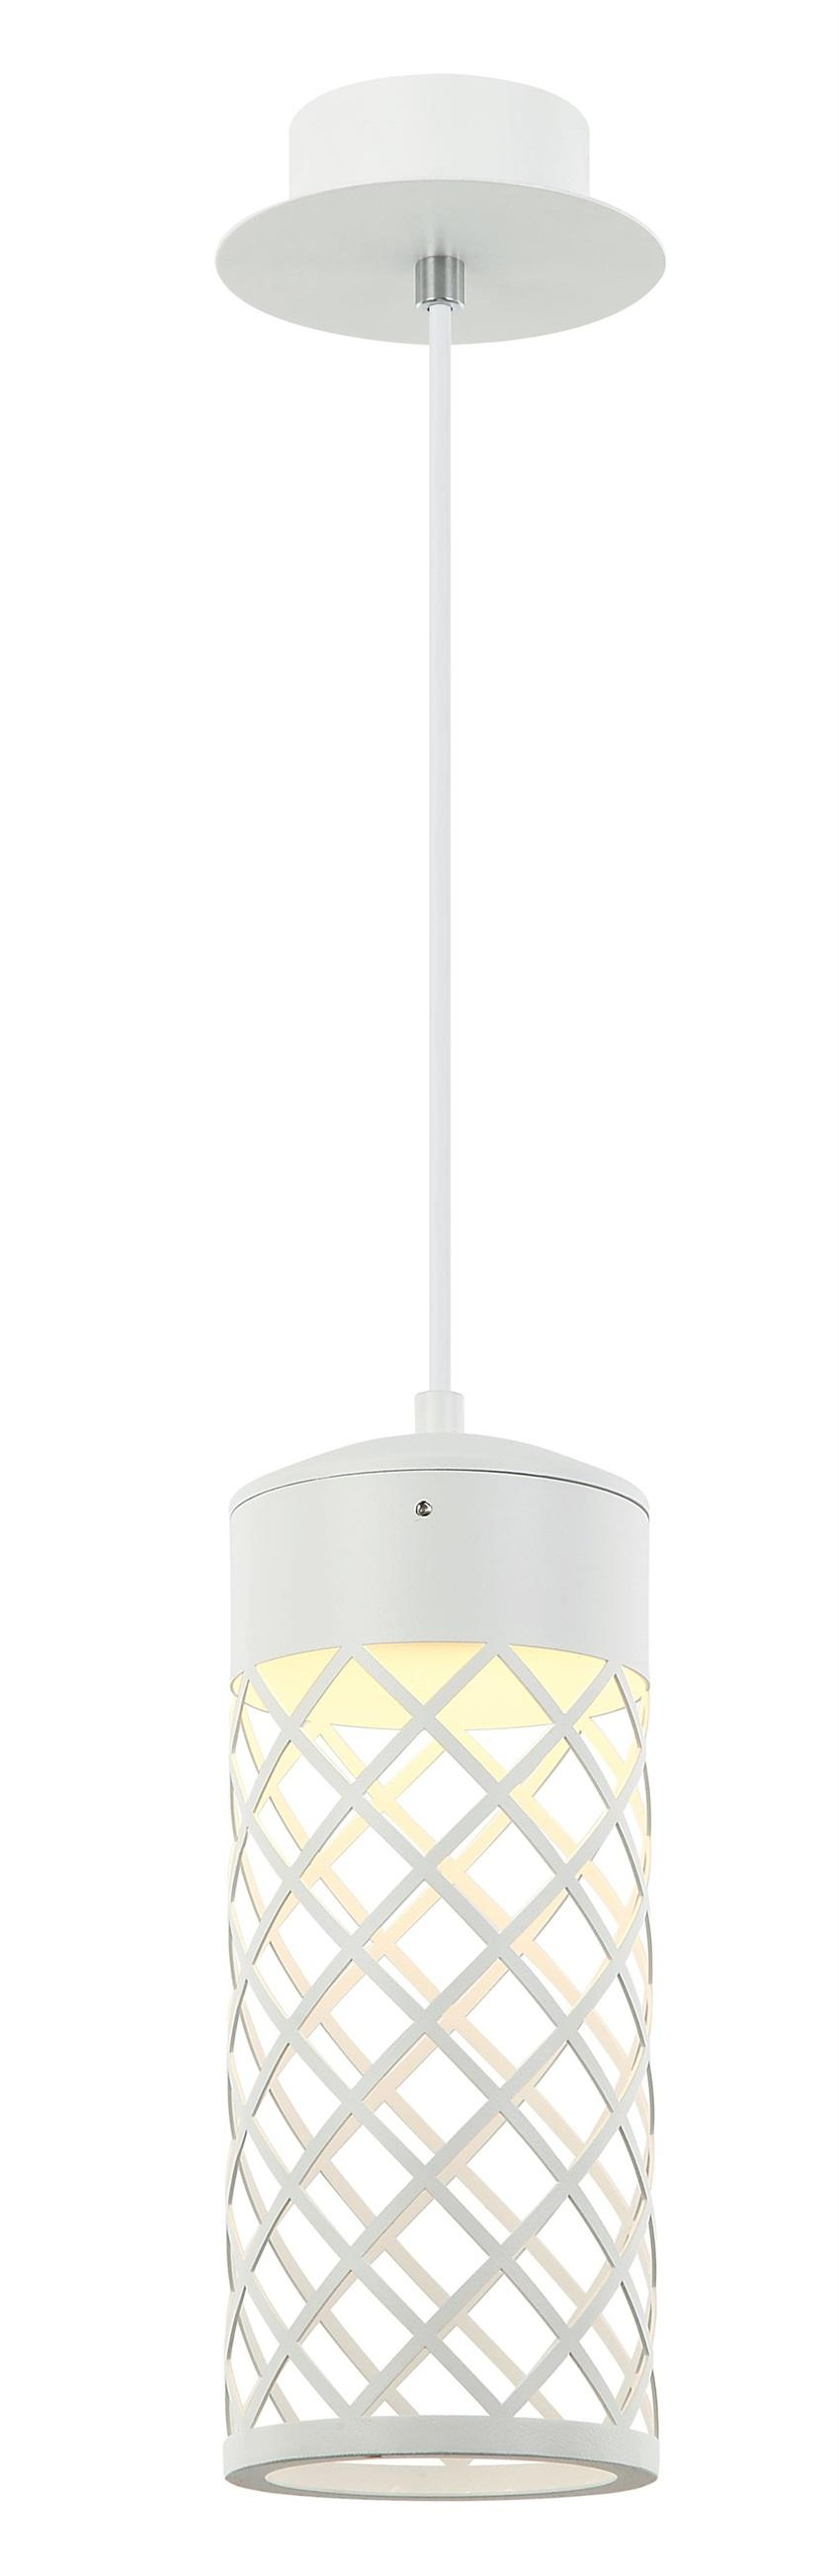 6W LED PENDANT LAMP 64123-1A